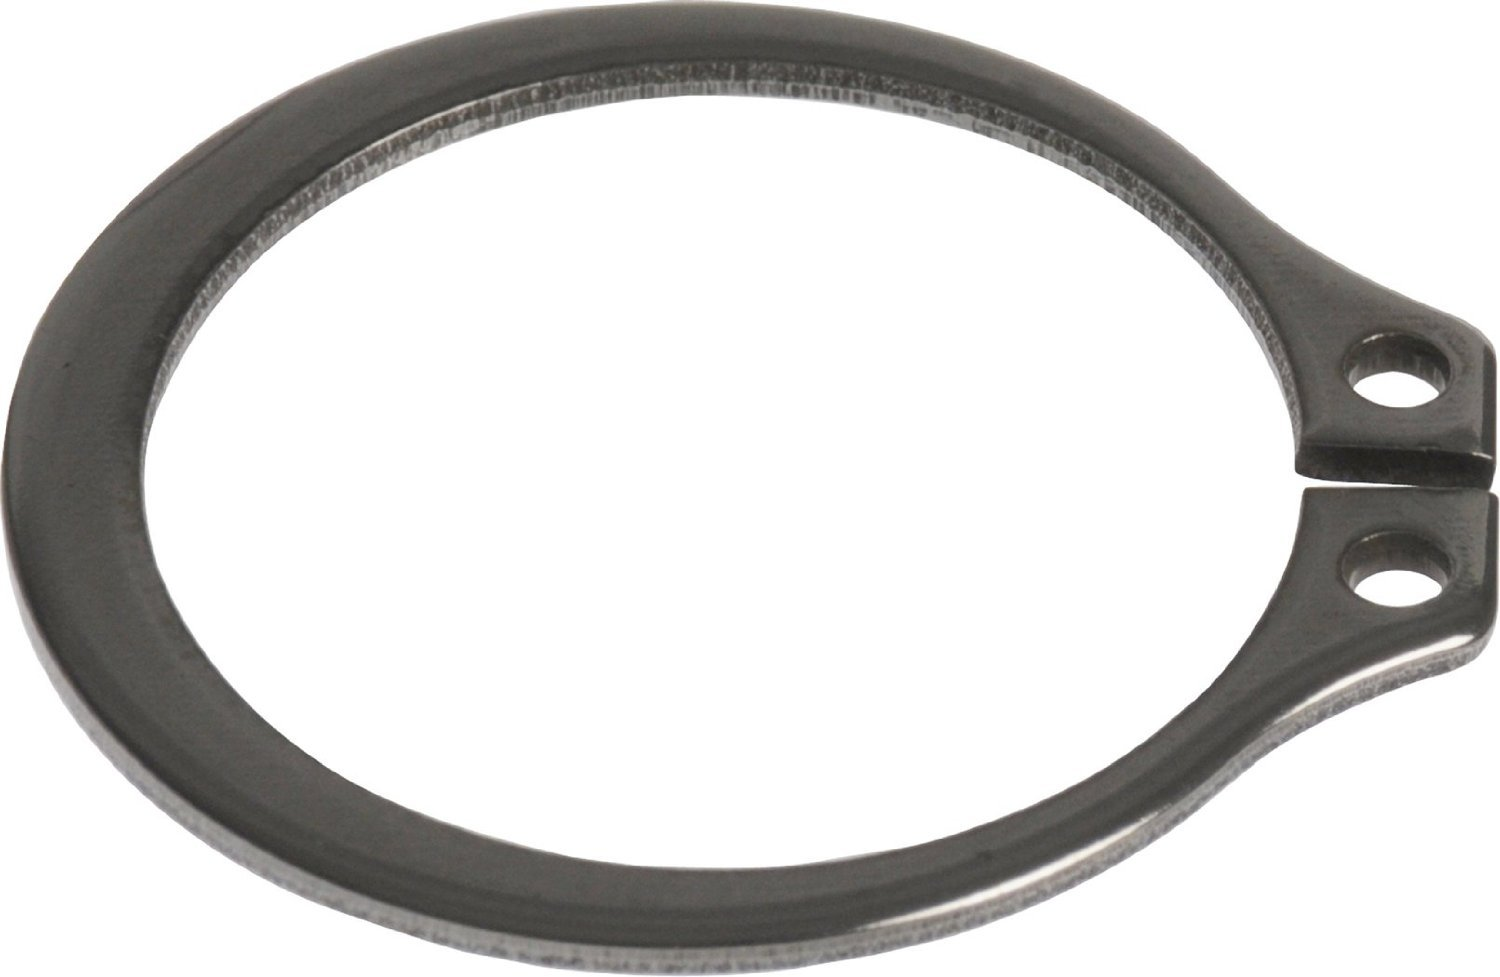 12-Pack The Hillman Group 45198 1//2-Inch Stainless Steel External Retaining Ring